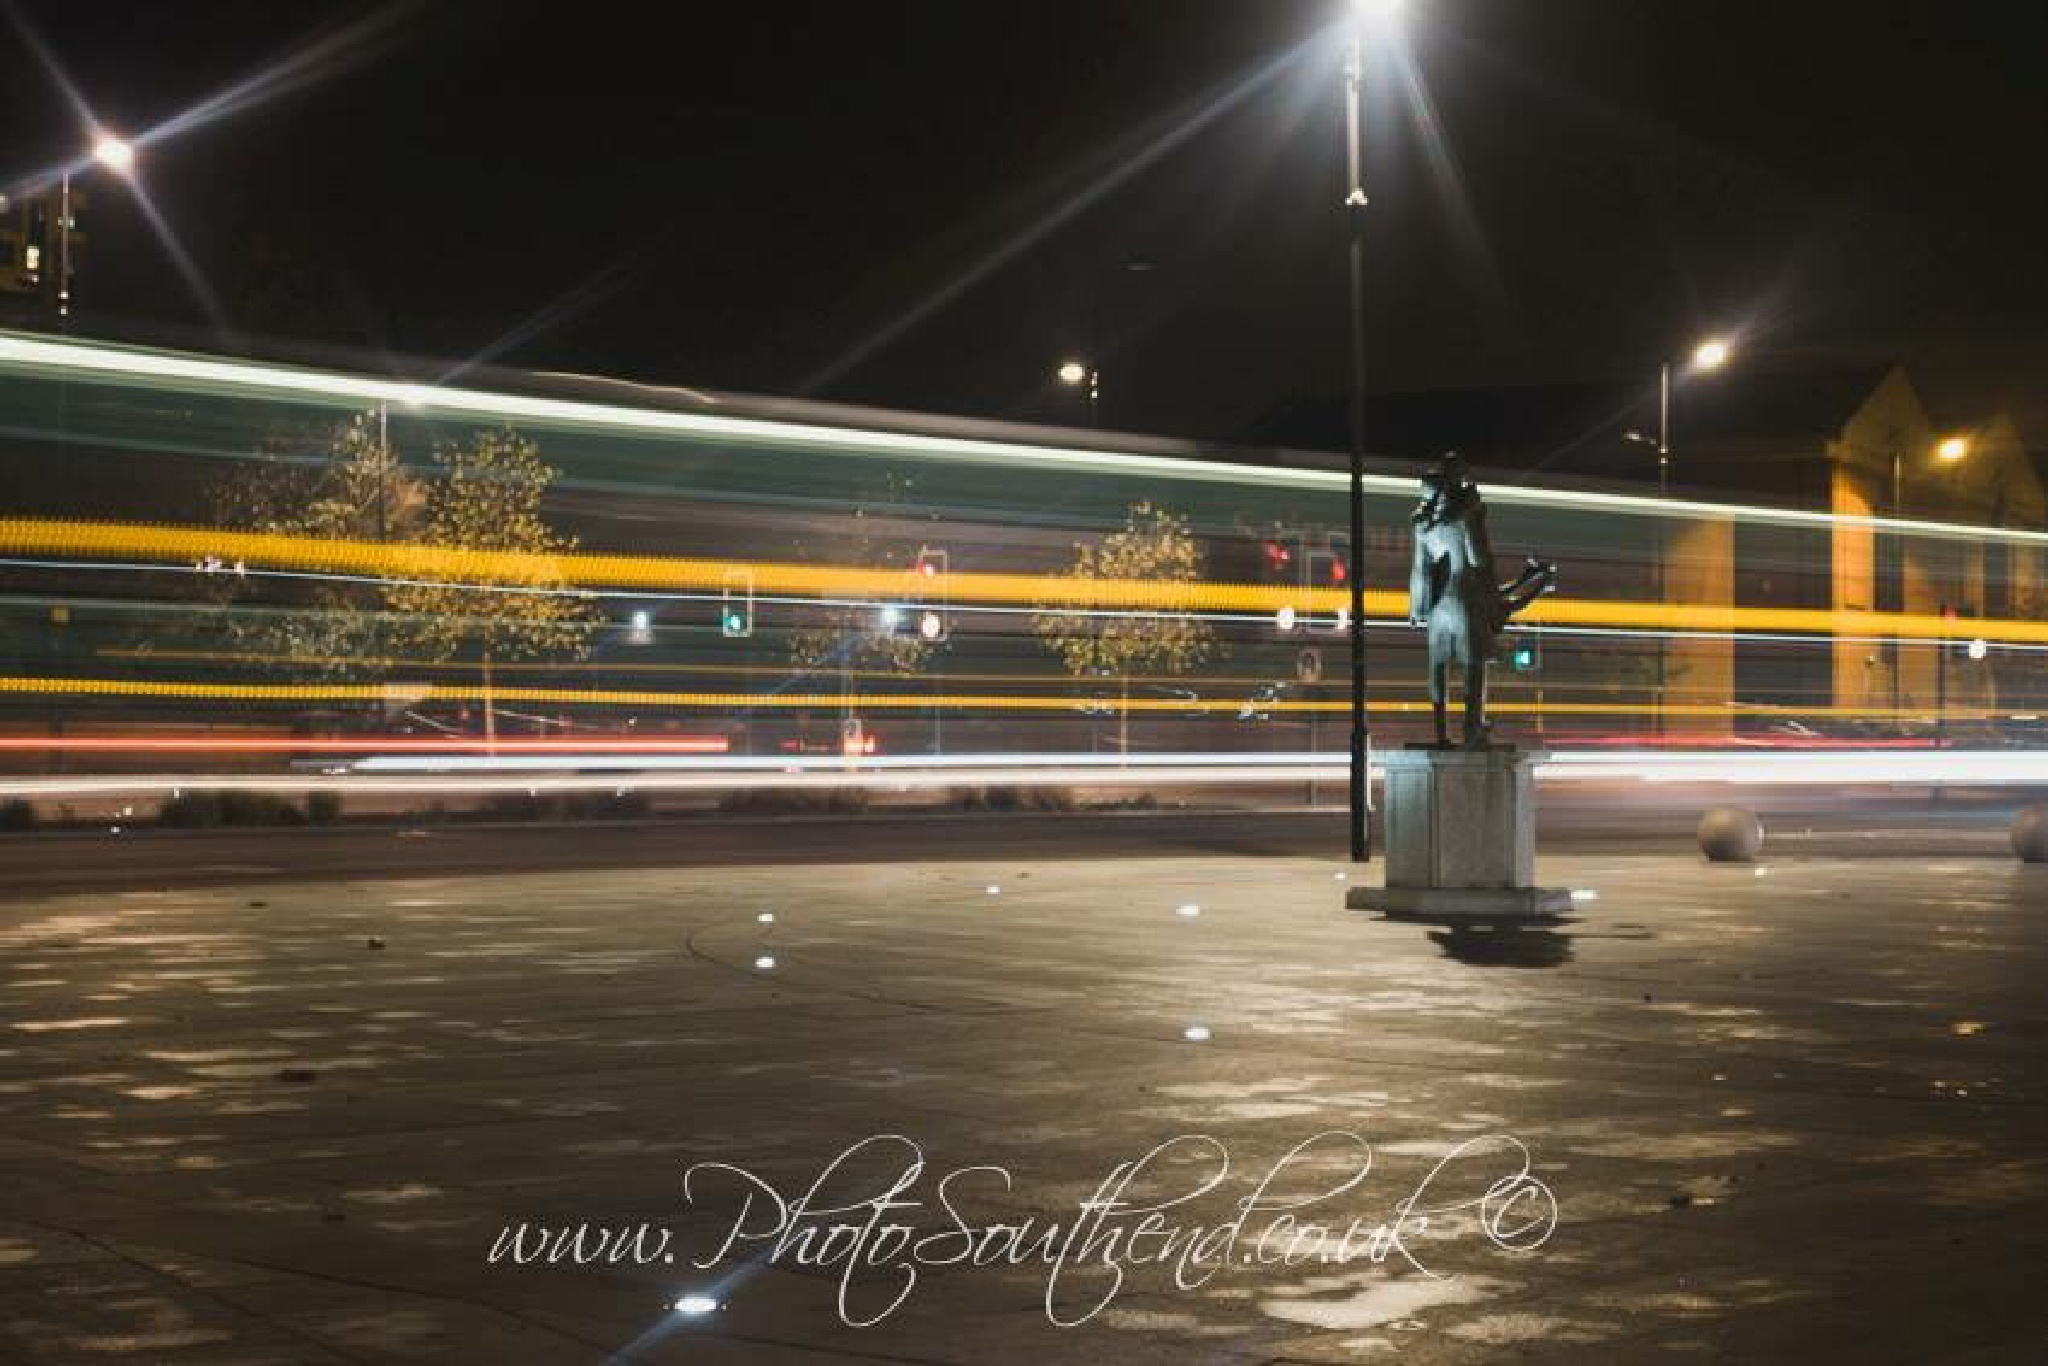 Bus lite  by Photo_Southend